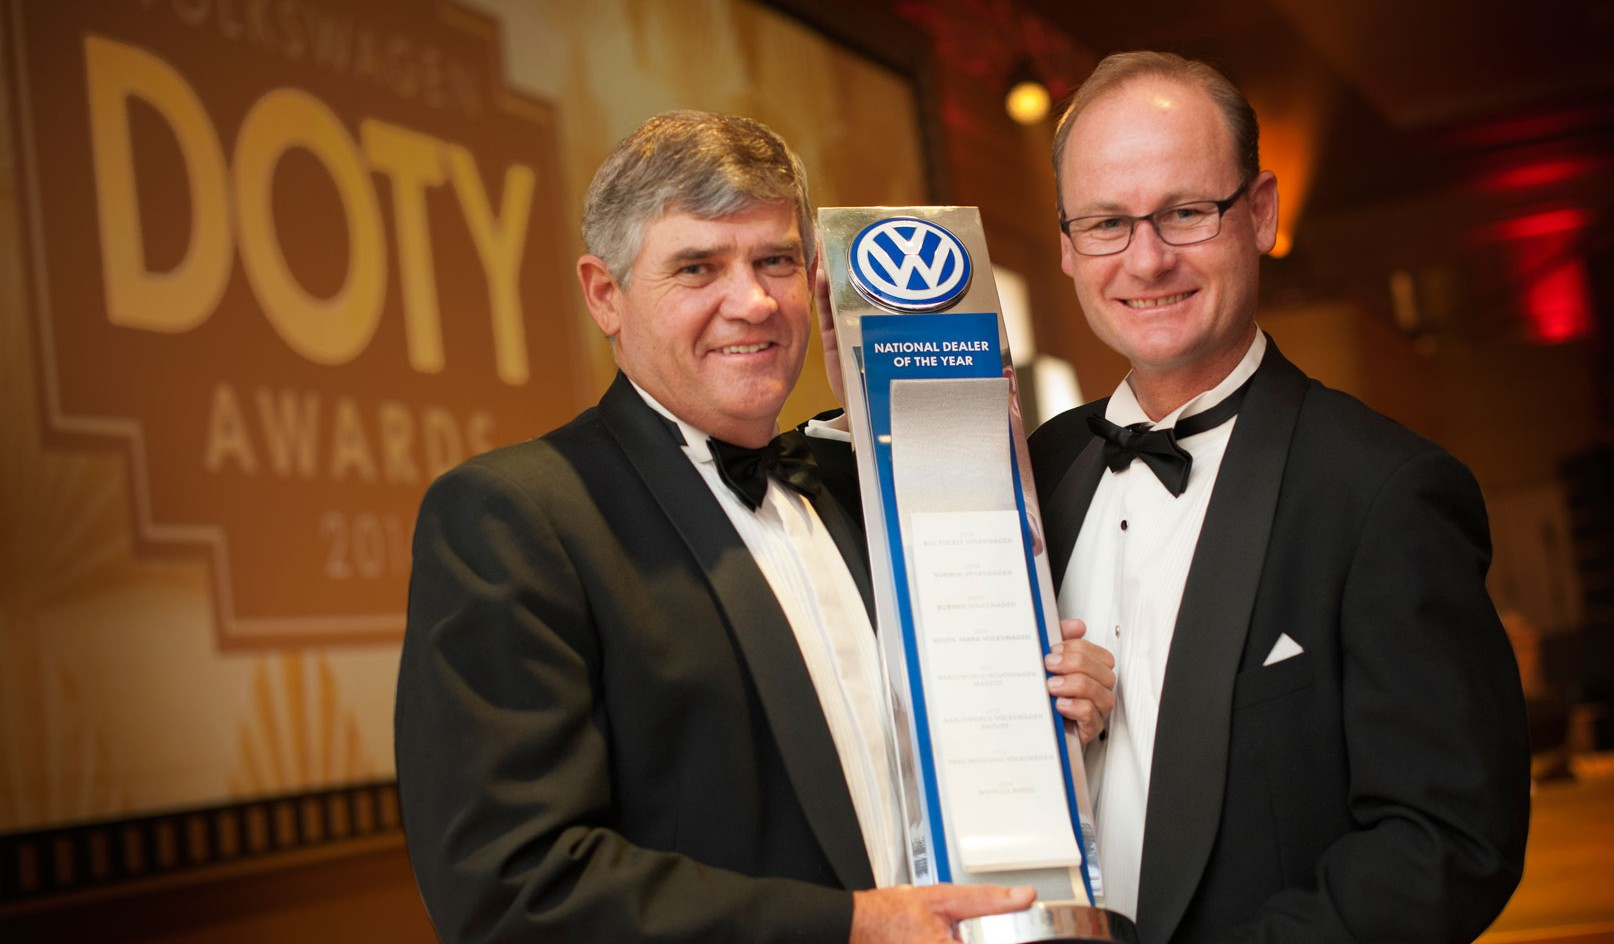 <div>Events</div><div> <a href='https://nedmeldrum.com.au/project/volkswagen-dealer-of-the-year/'>View Series</a></div>